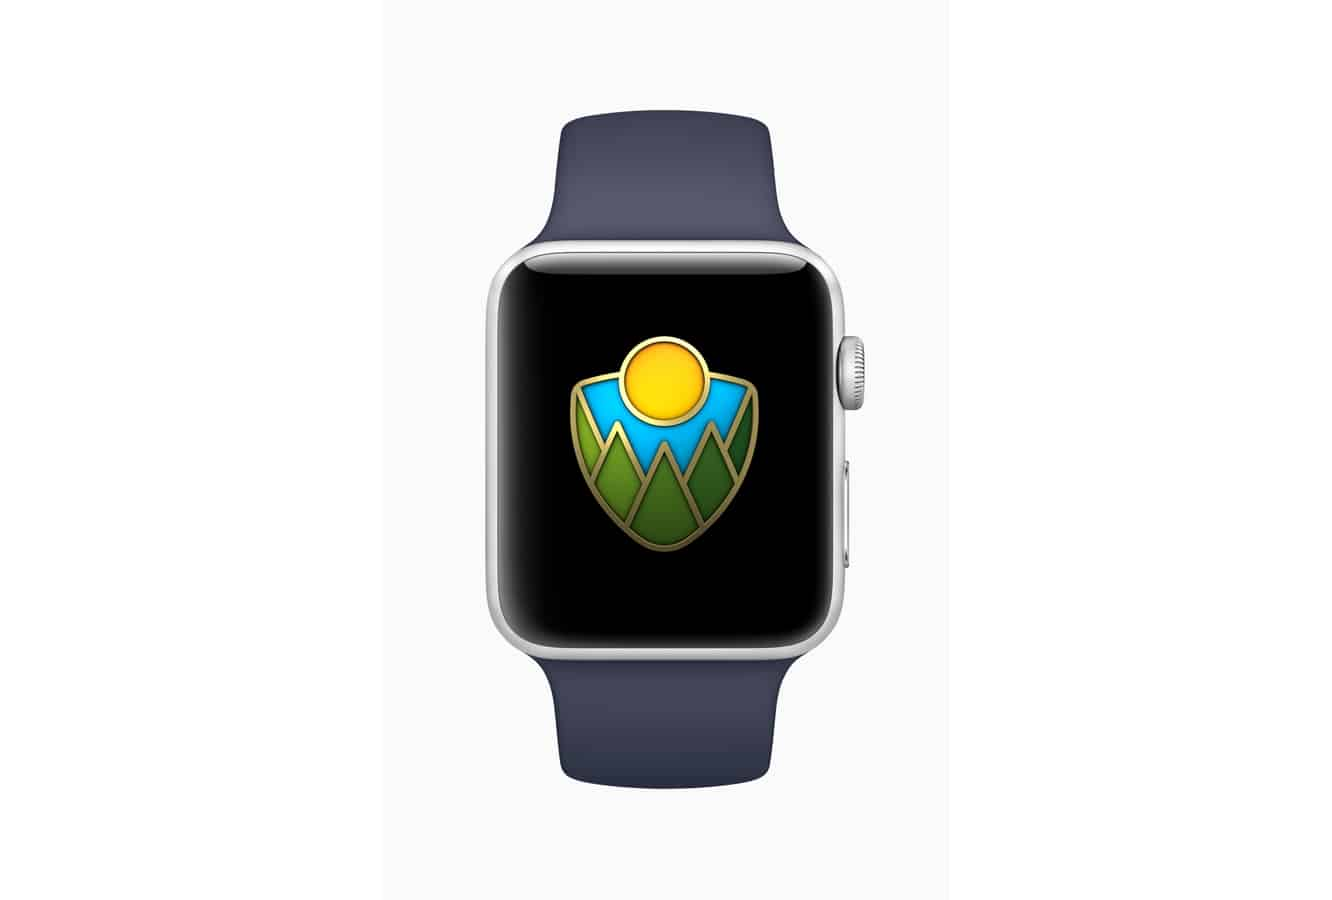 Apple celebrates America's National Parks with Apple Pay donations and Apple Watch challenge